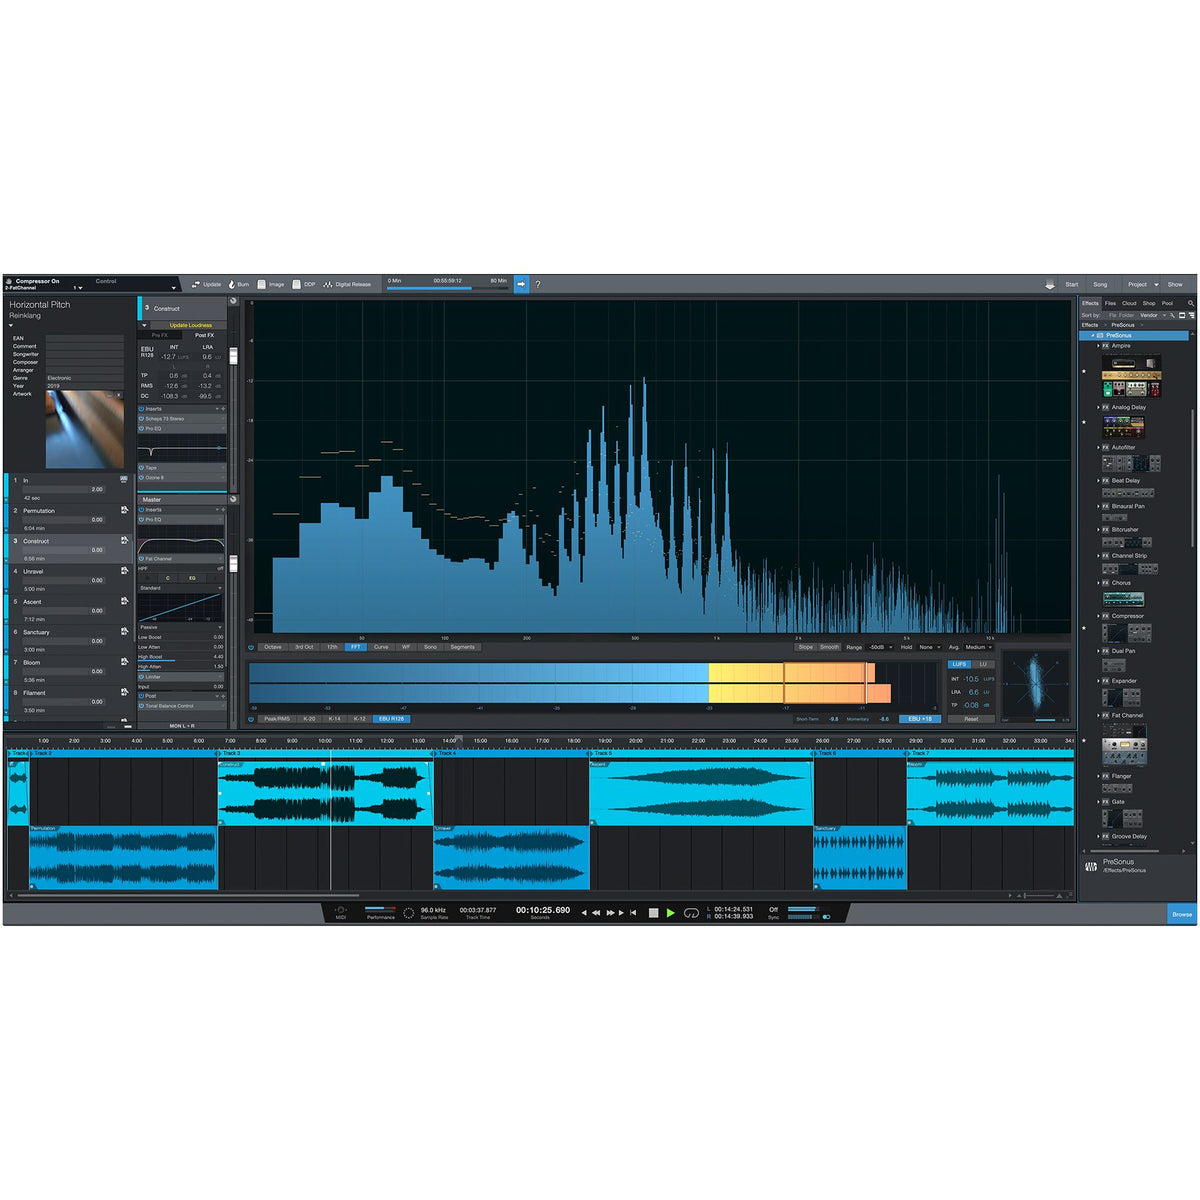 PreSonus Studio One 5 Professional Upgrade from Artist (any version for Quantum Interface Users - [Quantum 2 and Quantum 2626 excluded]) Software - Digital Download